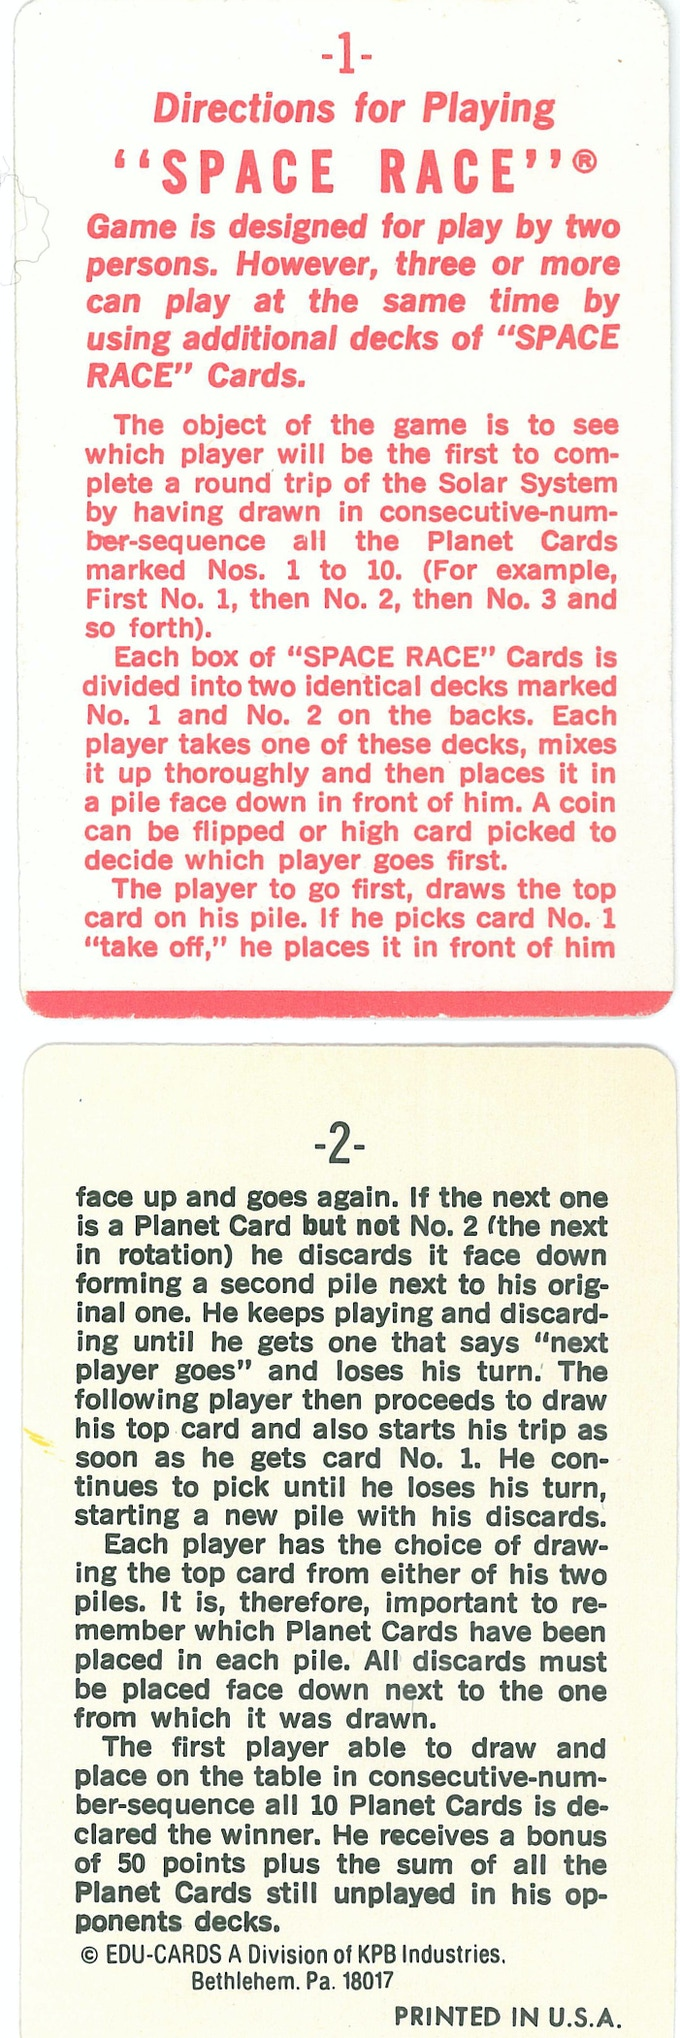 Space Race Game Rules